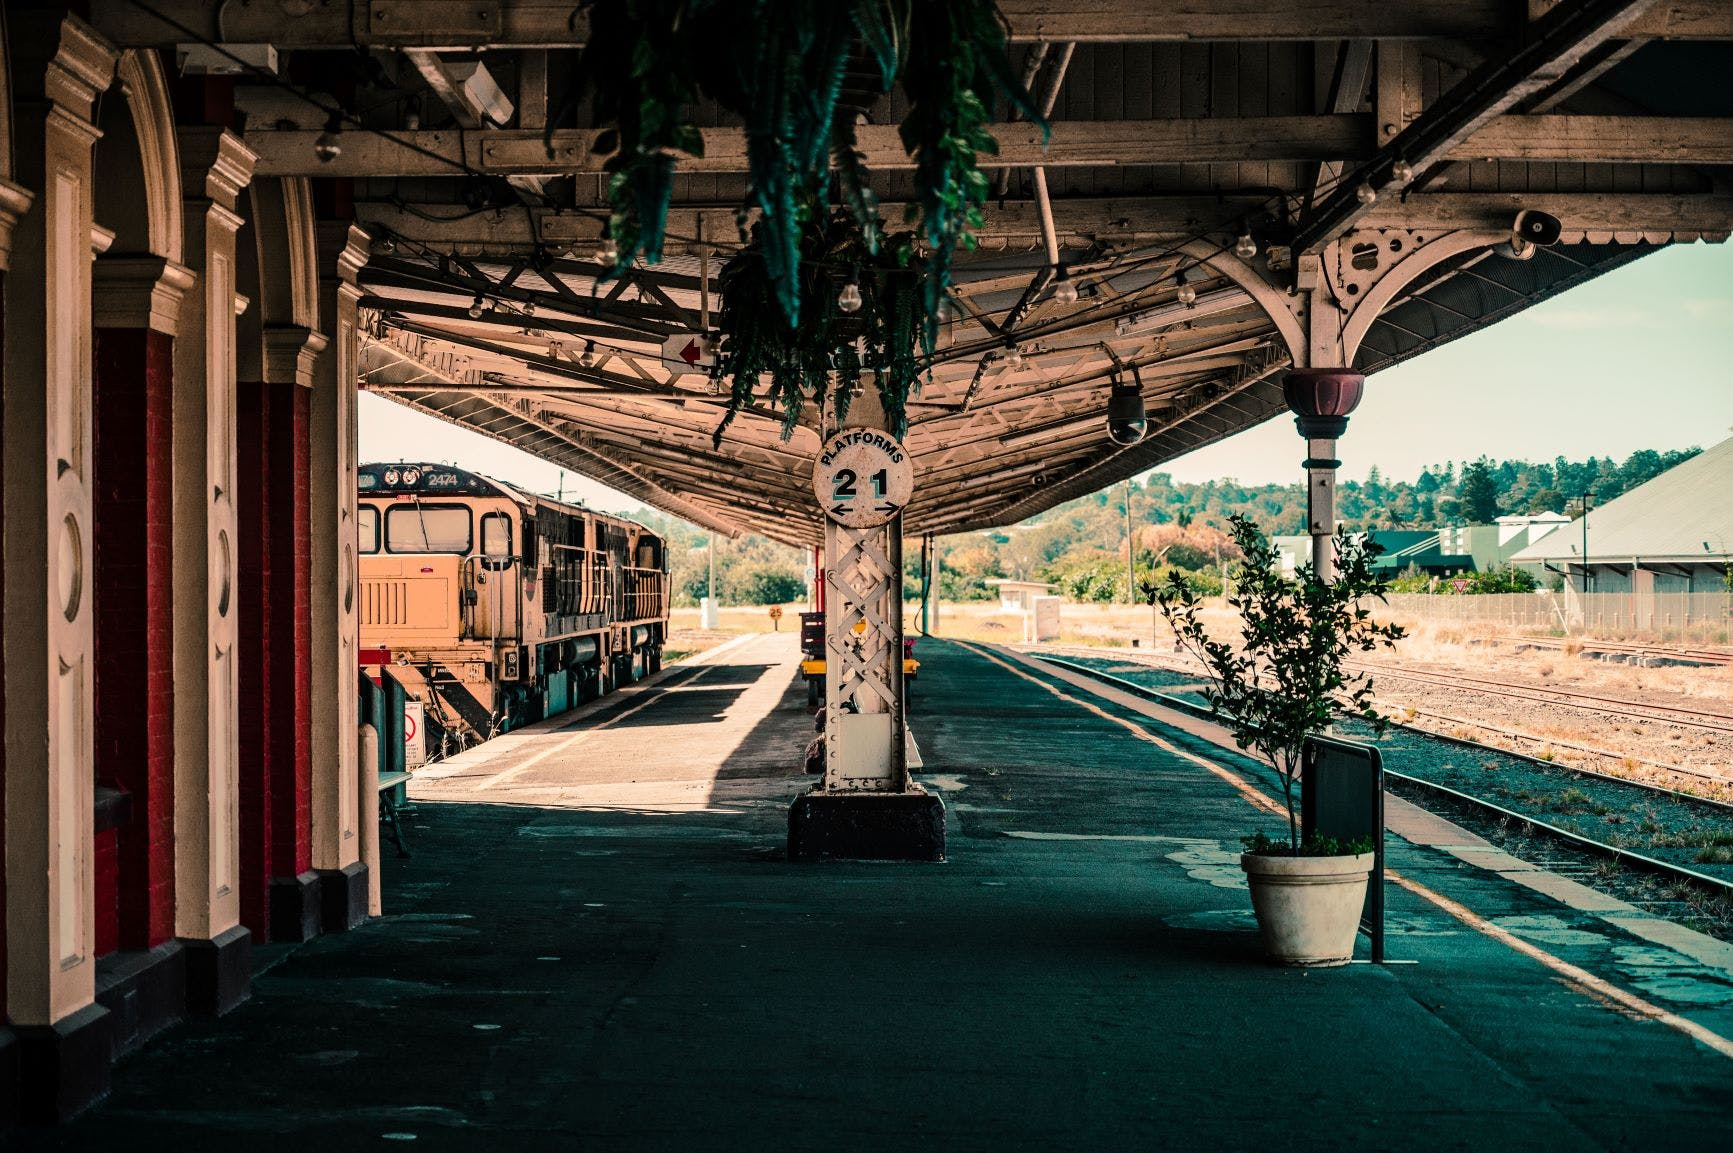 Dylan Robins, Toowoomba Railway Station 2020 (Highly Commended, Urban Character/Built Heritage Category)